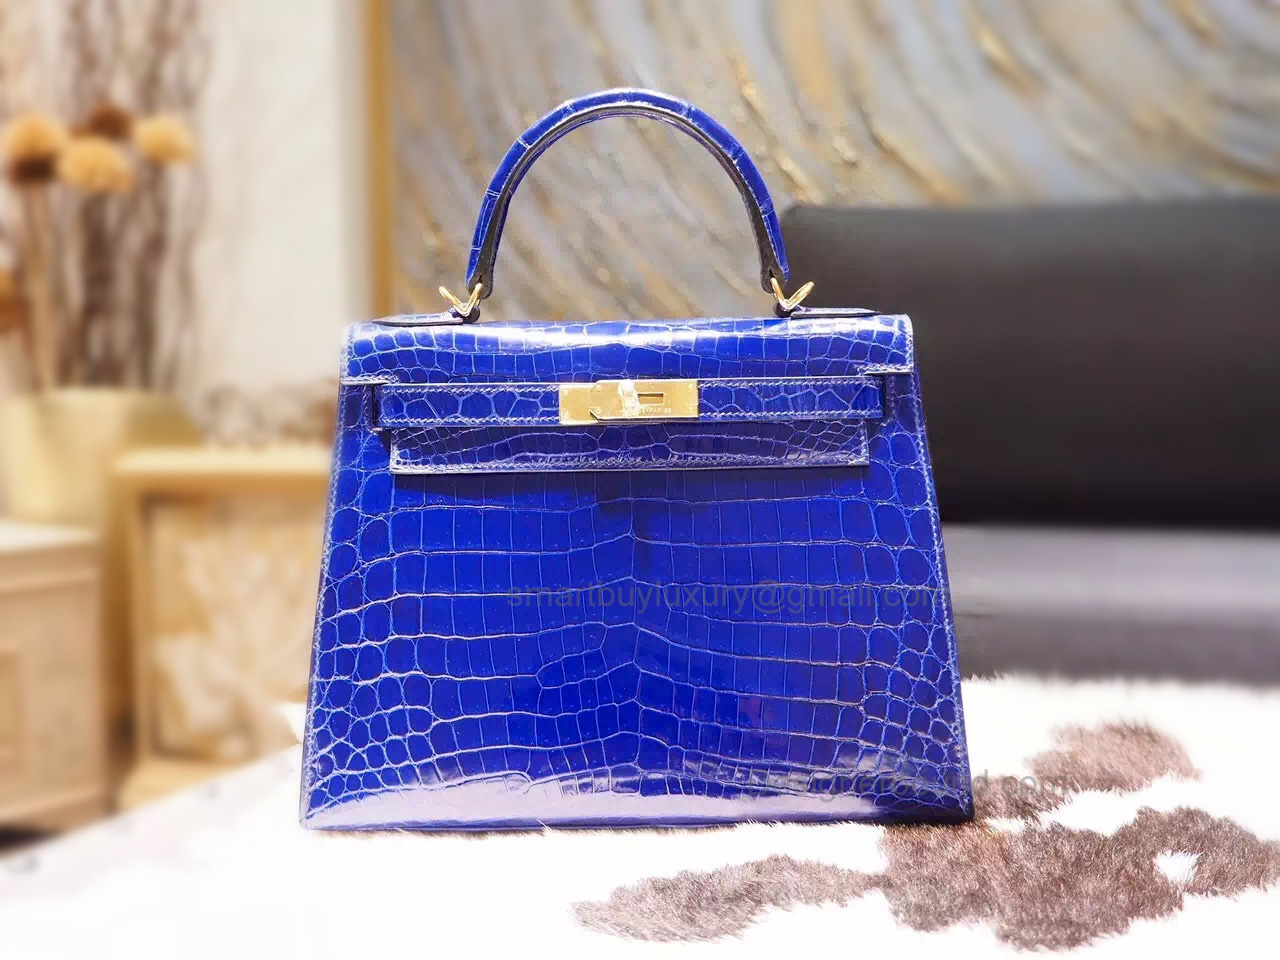 Copy Hermes Kelly 28 Bag Handmade in 7t Blue Electric Shining Nile Croc GHW